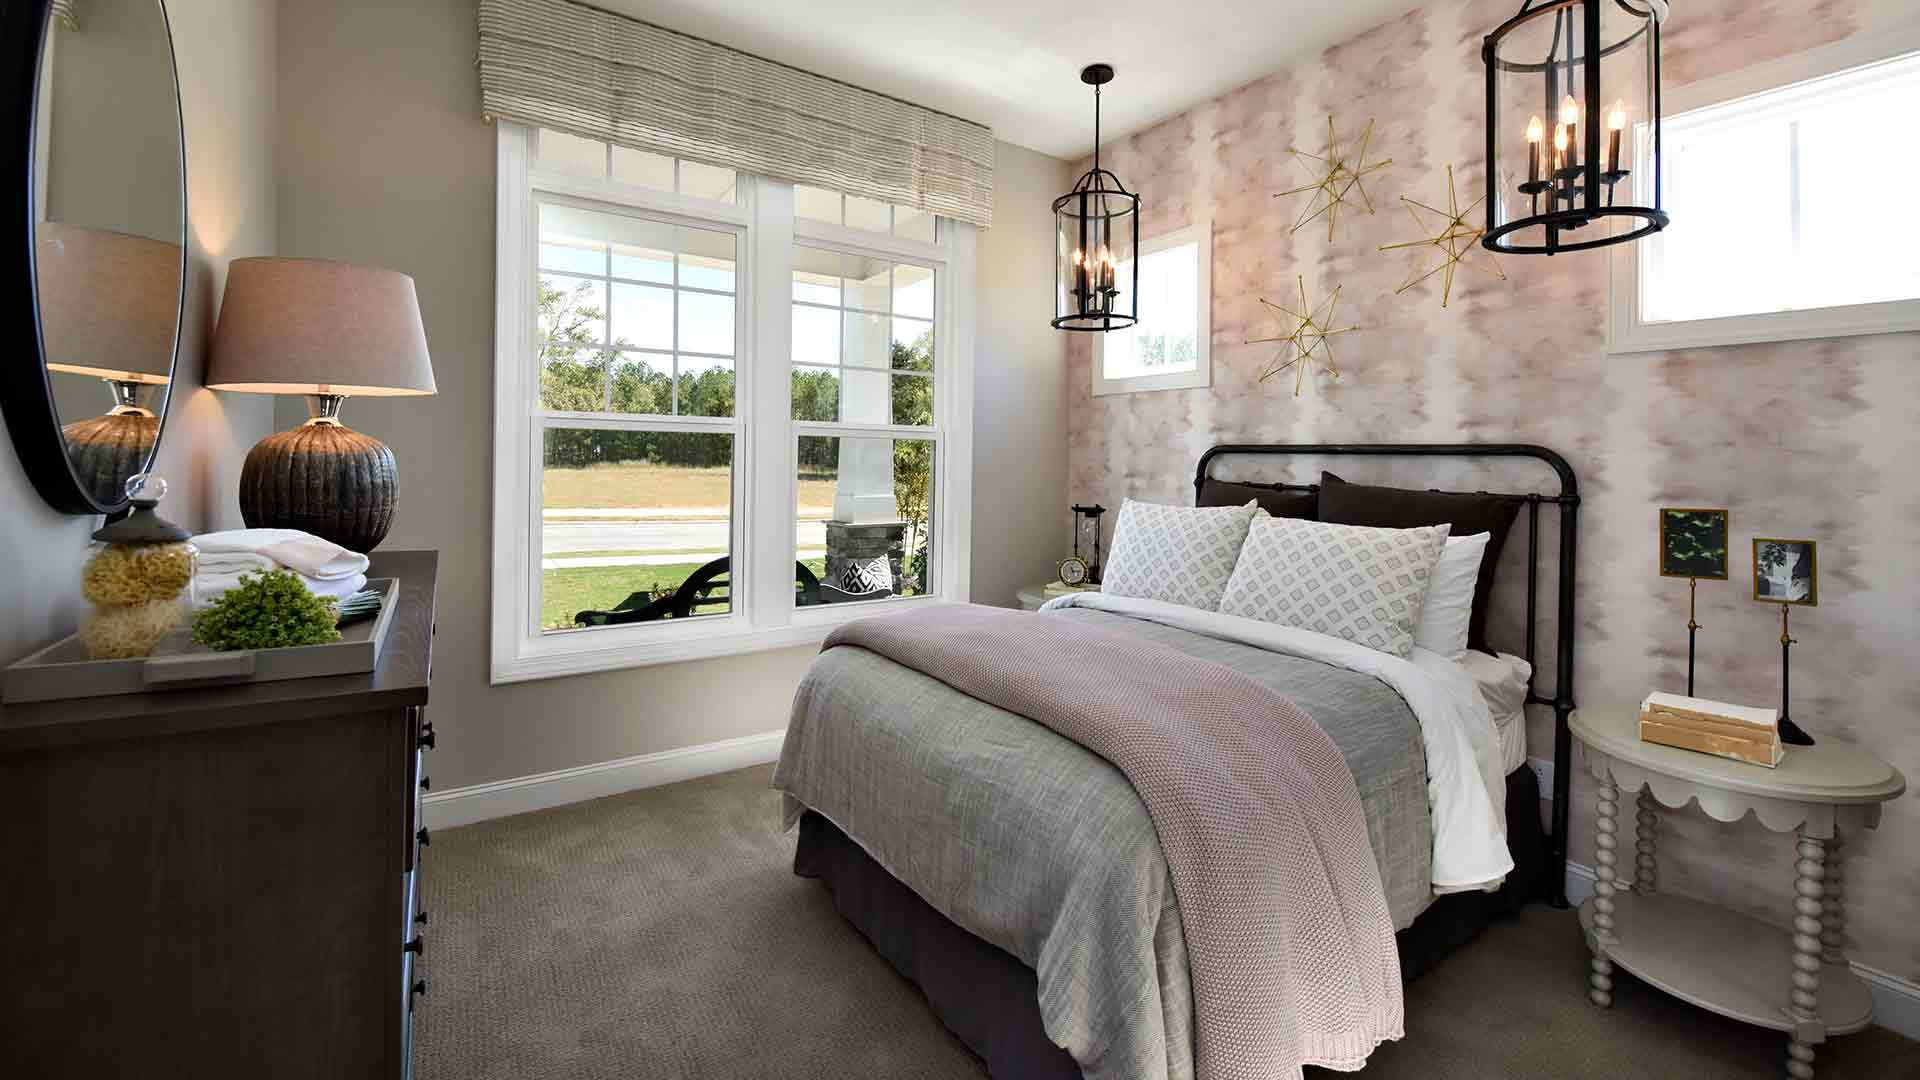 Bedroom featured in the Jackson II By Stanley Martin Homes in Charlottesville, VA